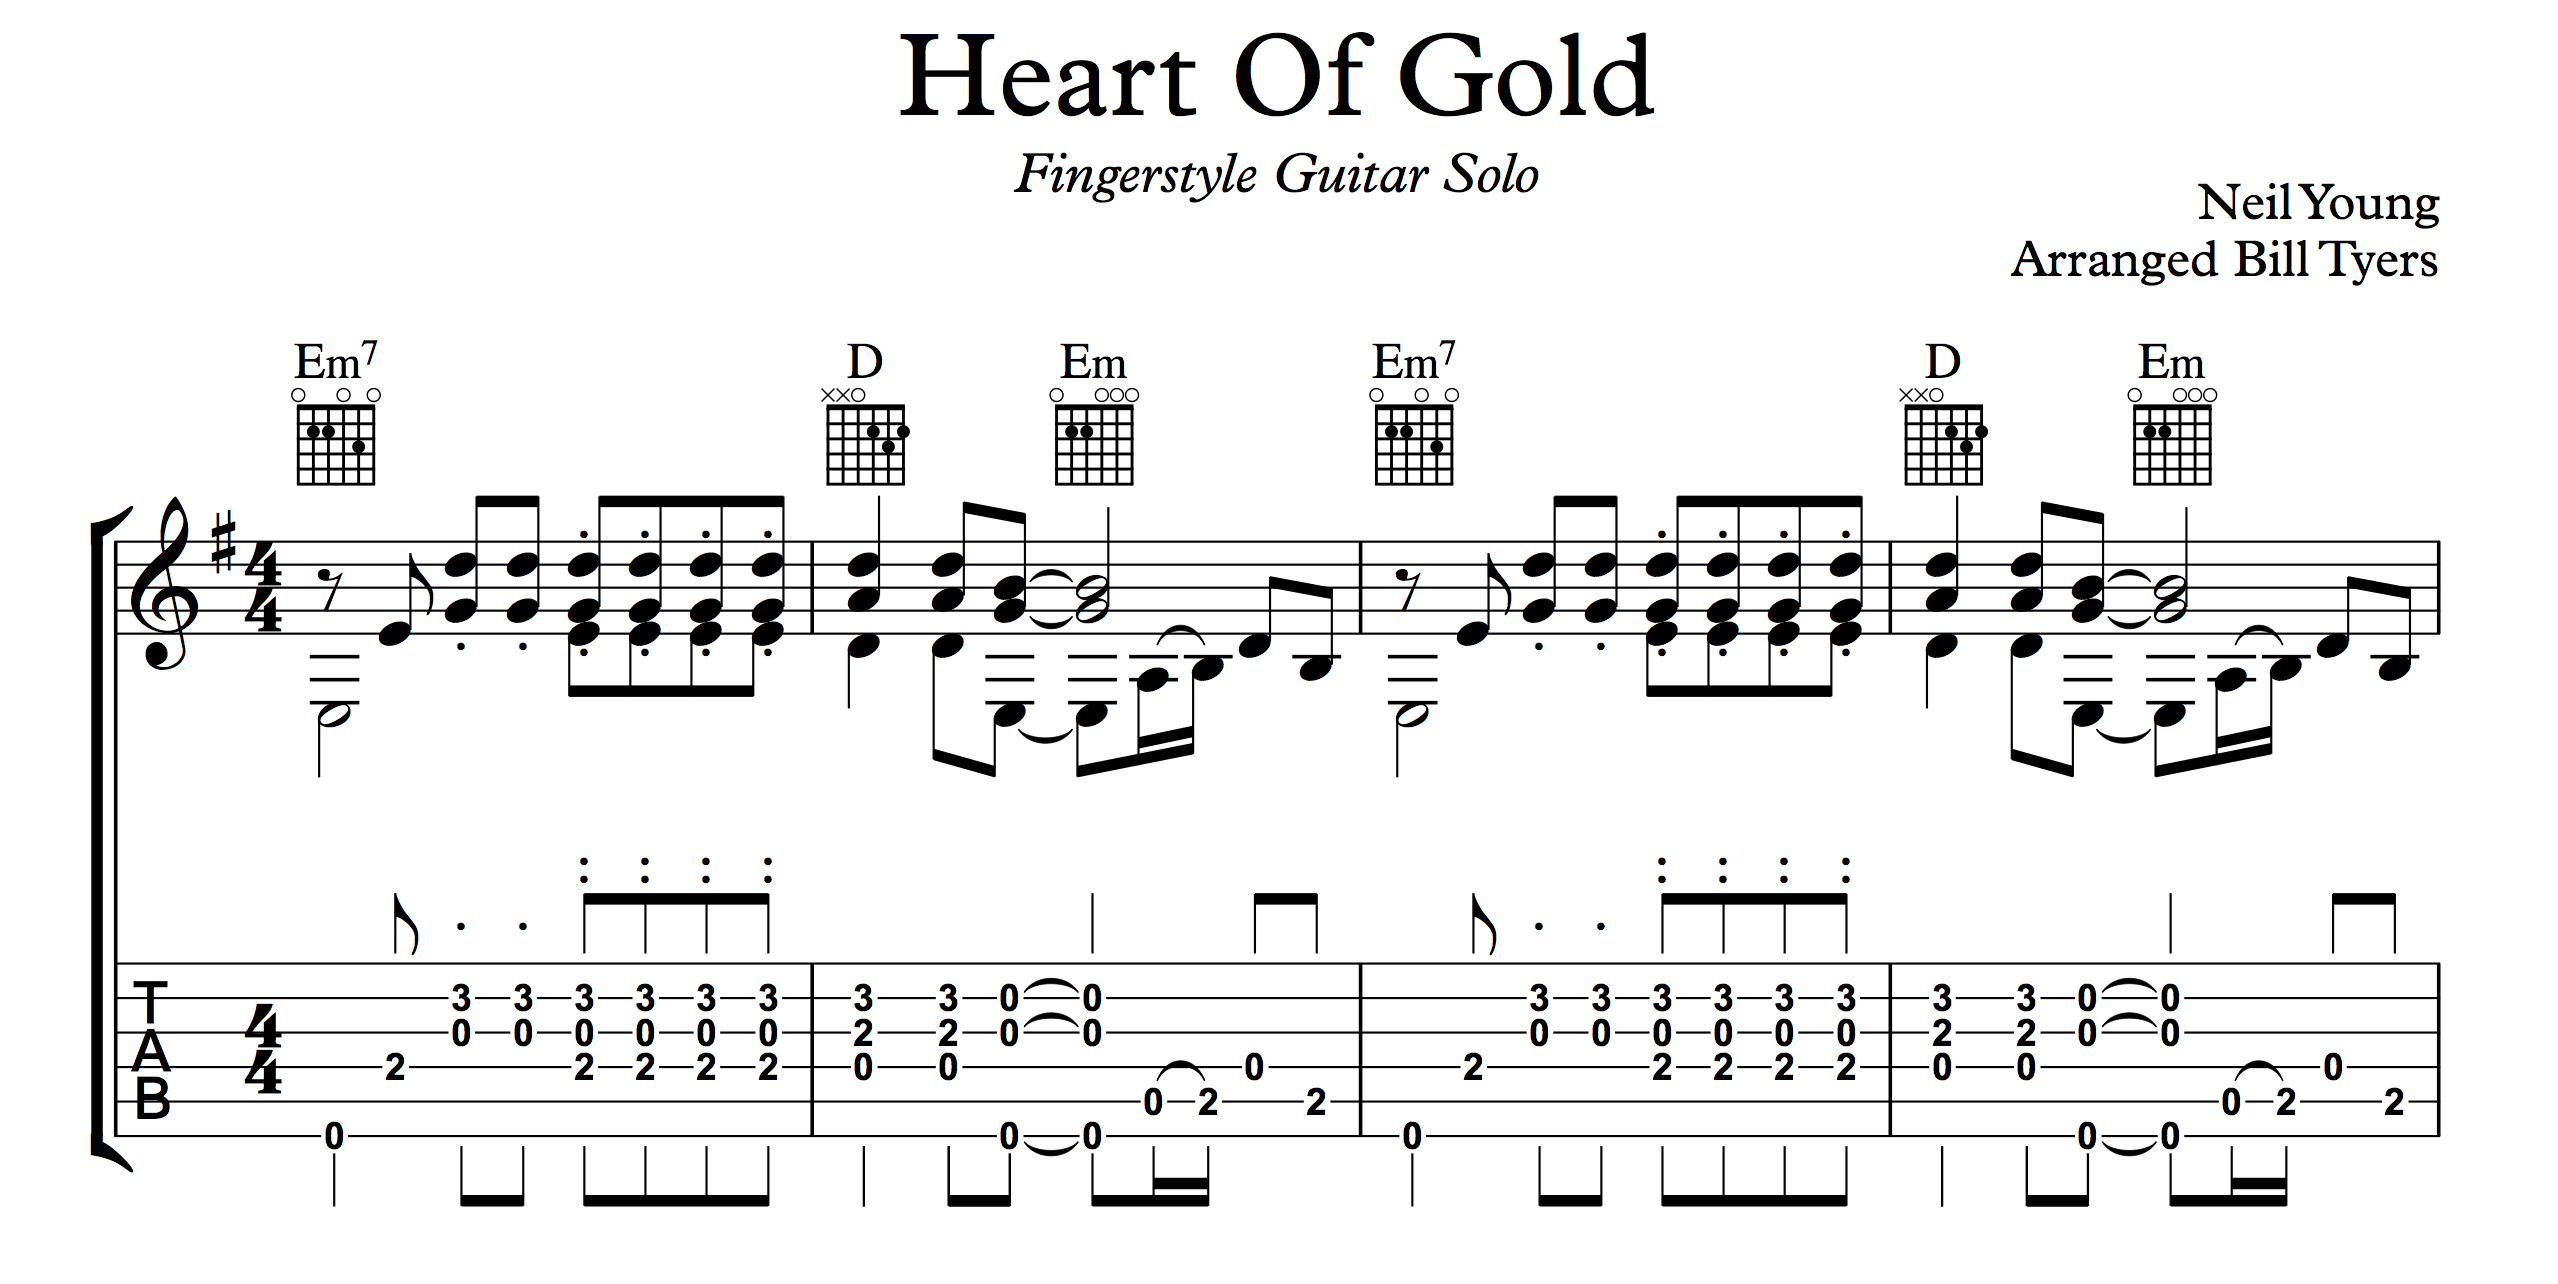 Heart of Gold Tabs submited images.